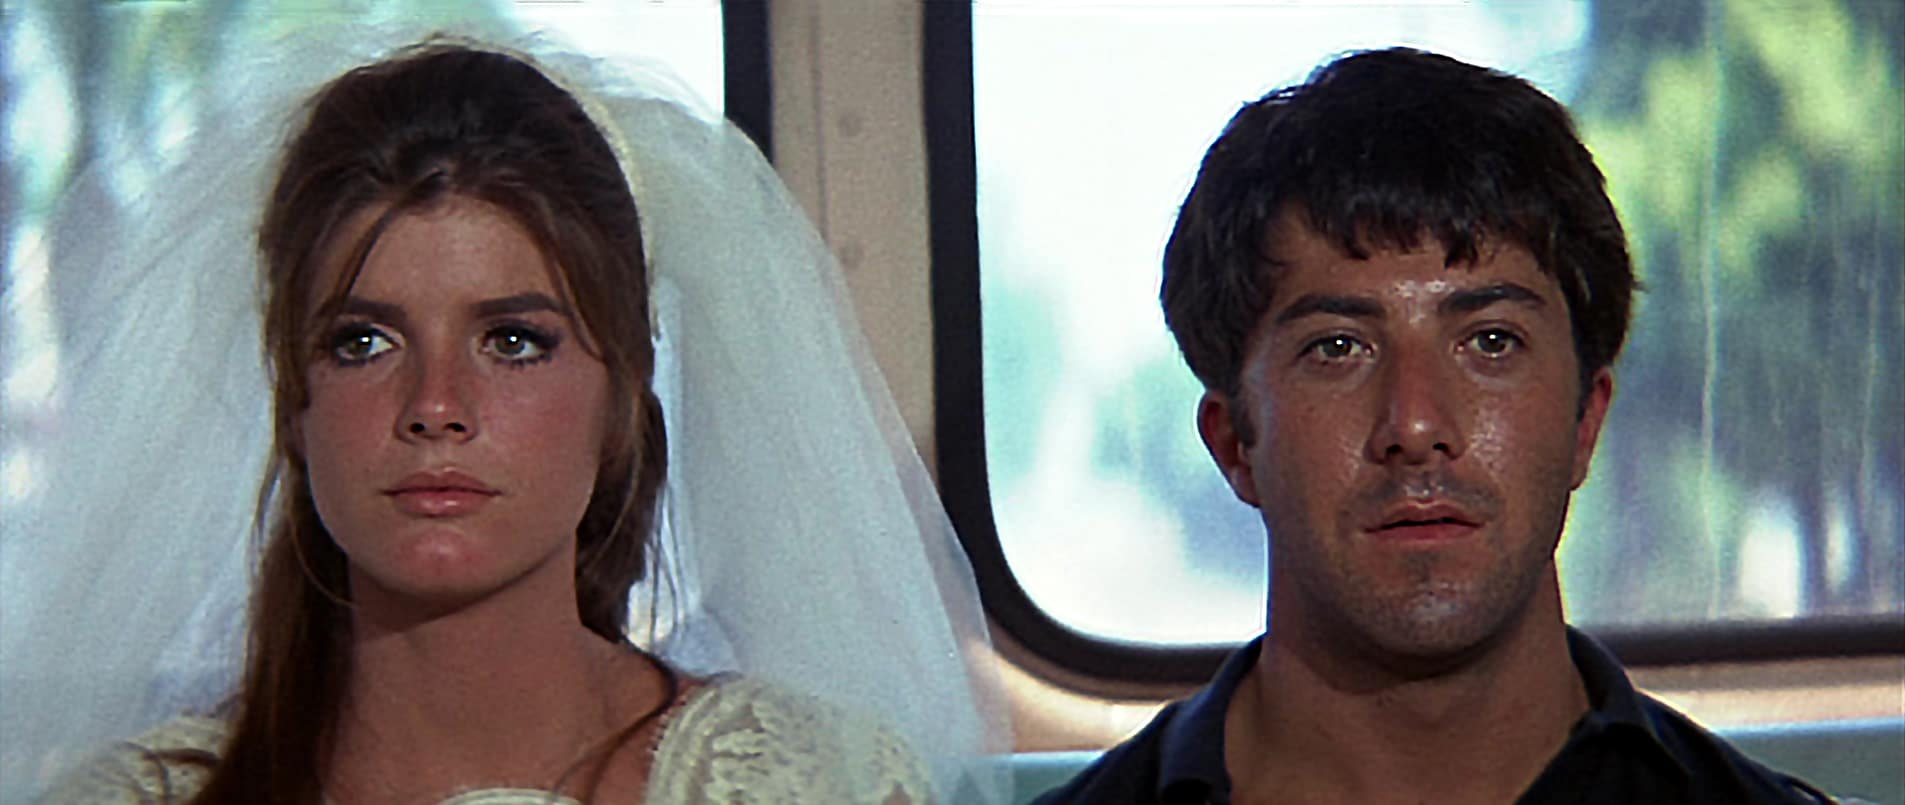 2. The Graduate - Directed by Mike Nichols